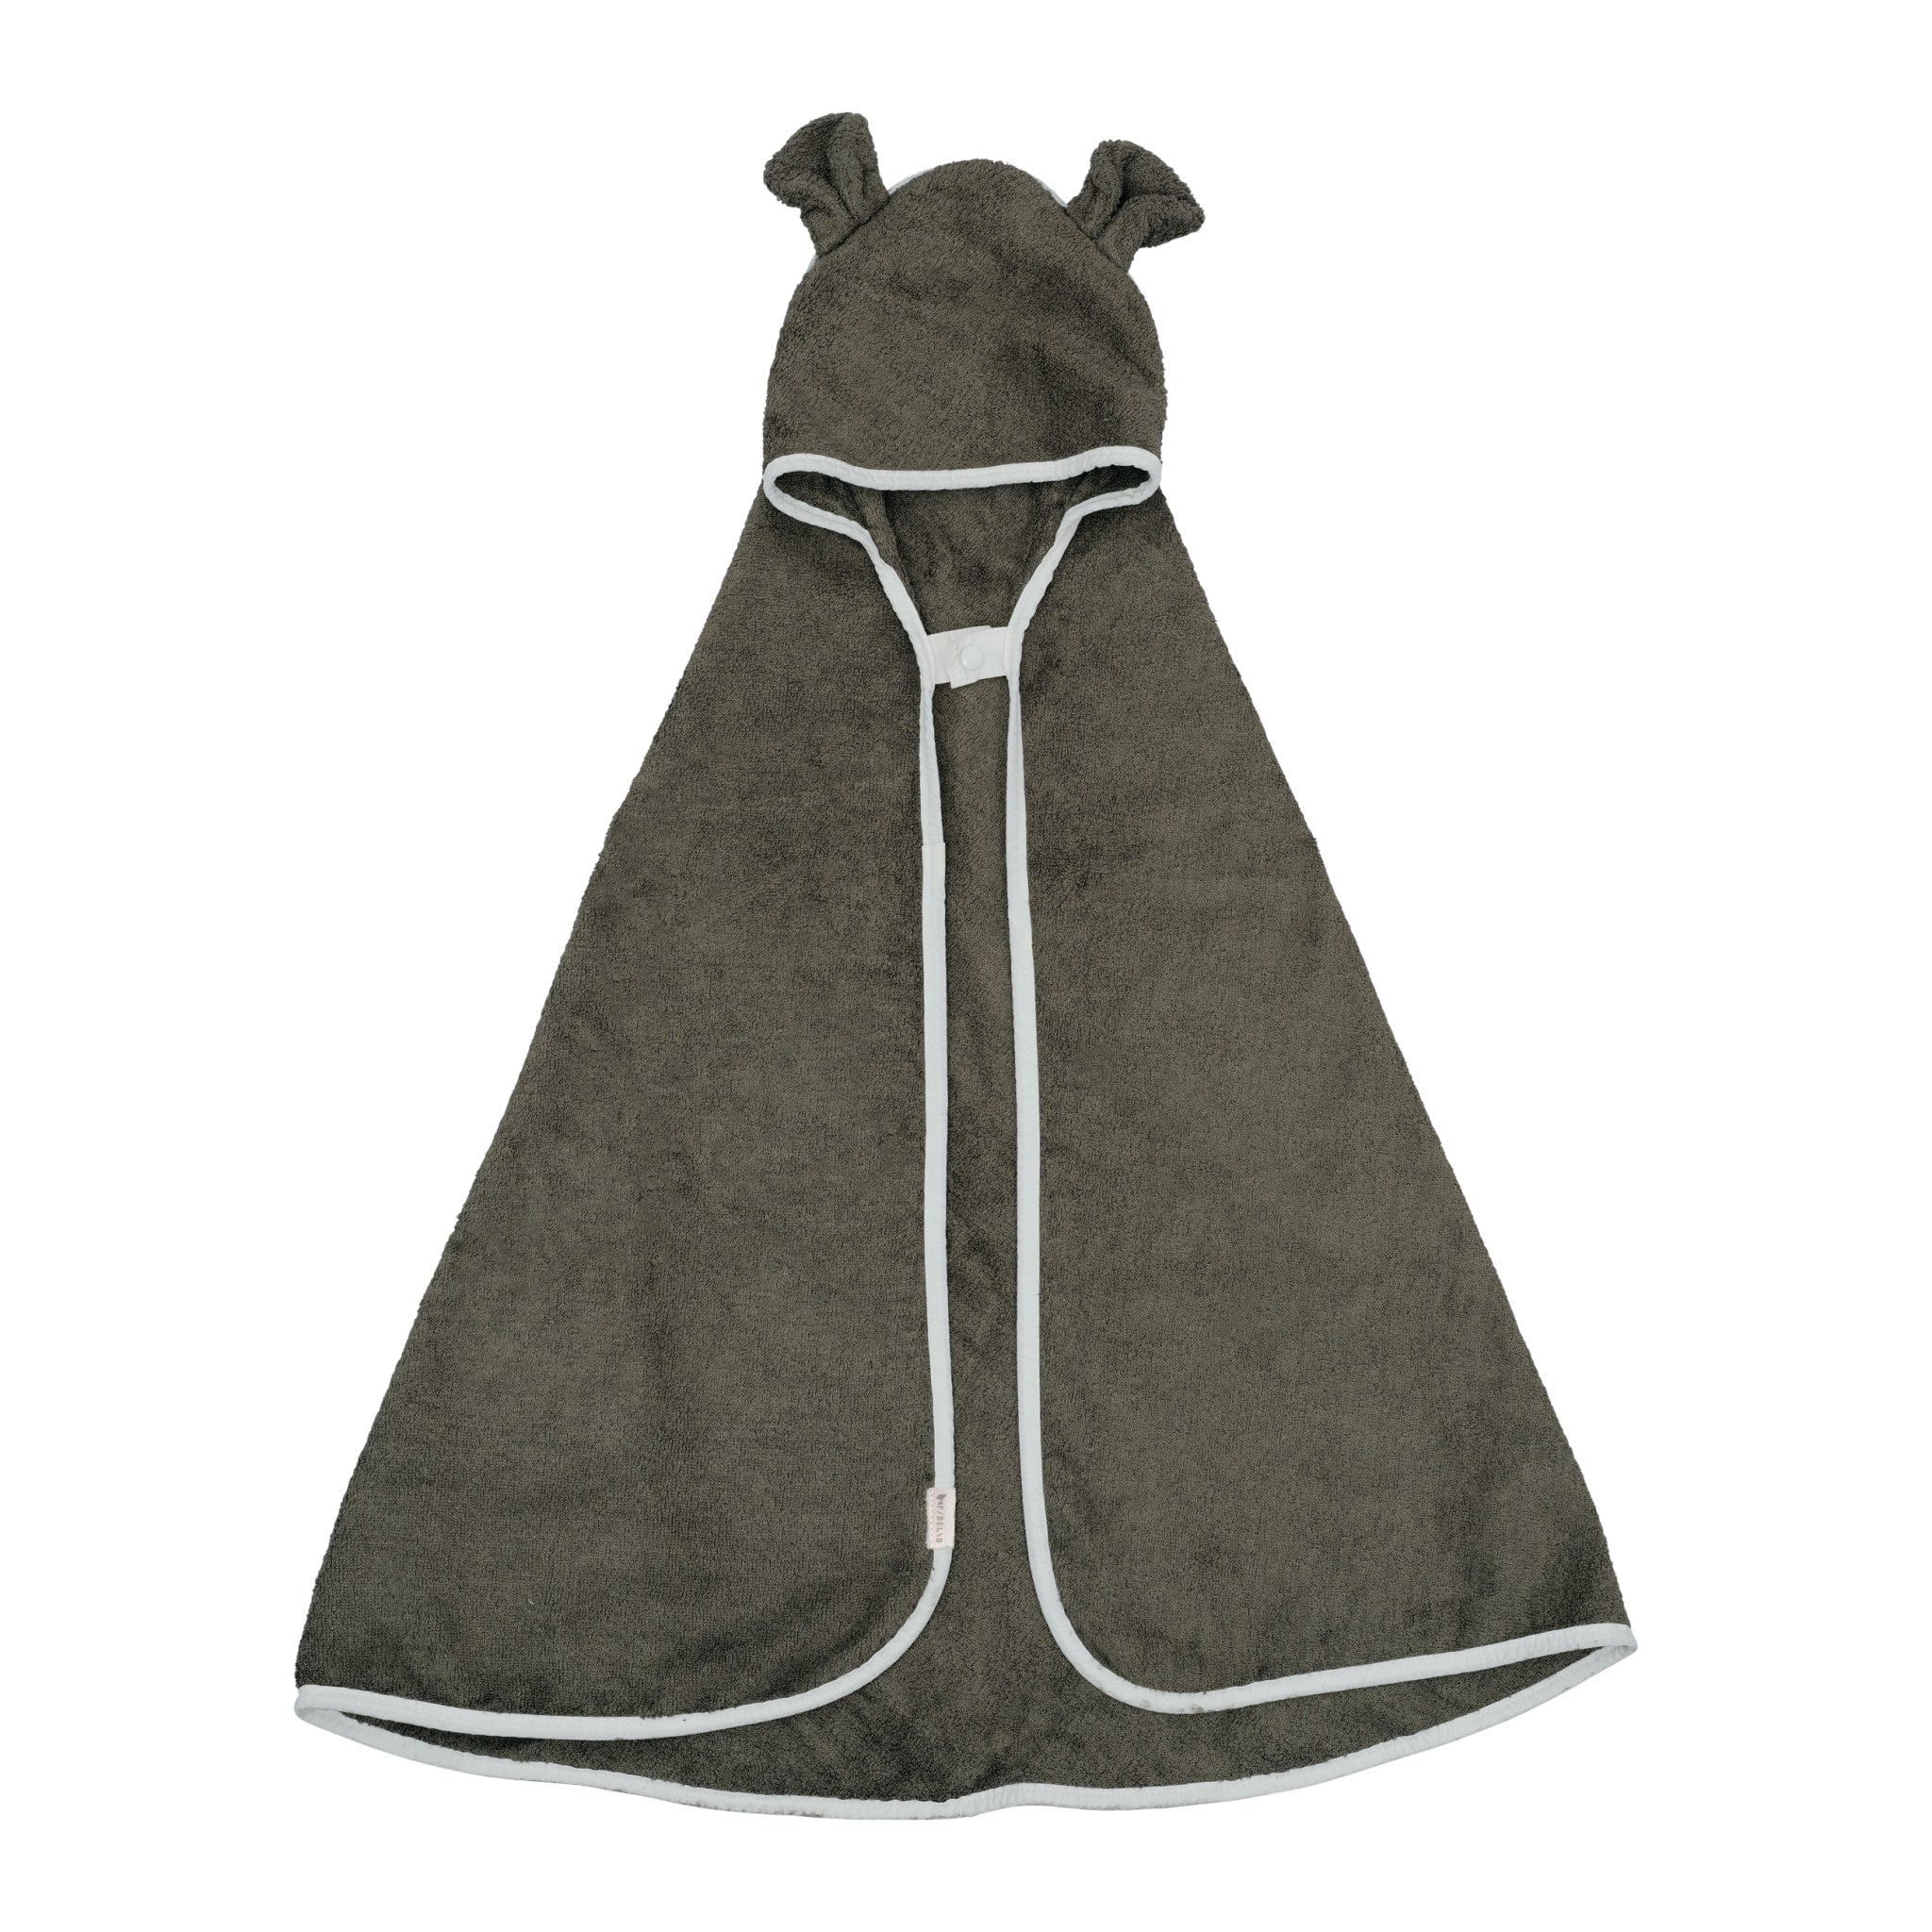 Hooded Baby Towel - Bear - Olive